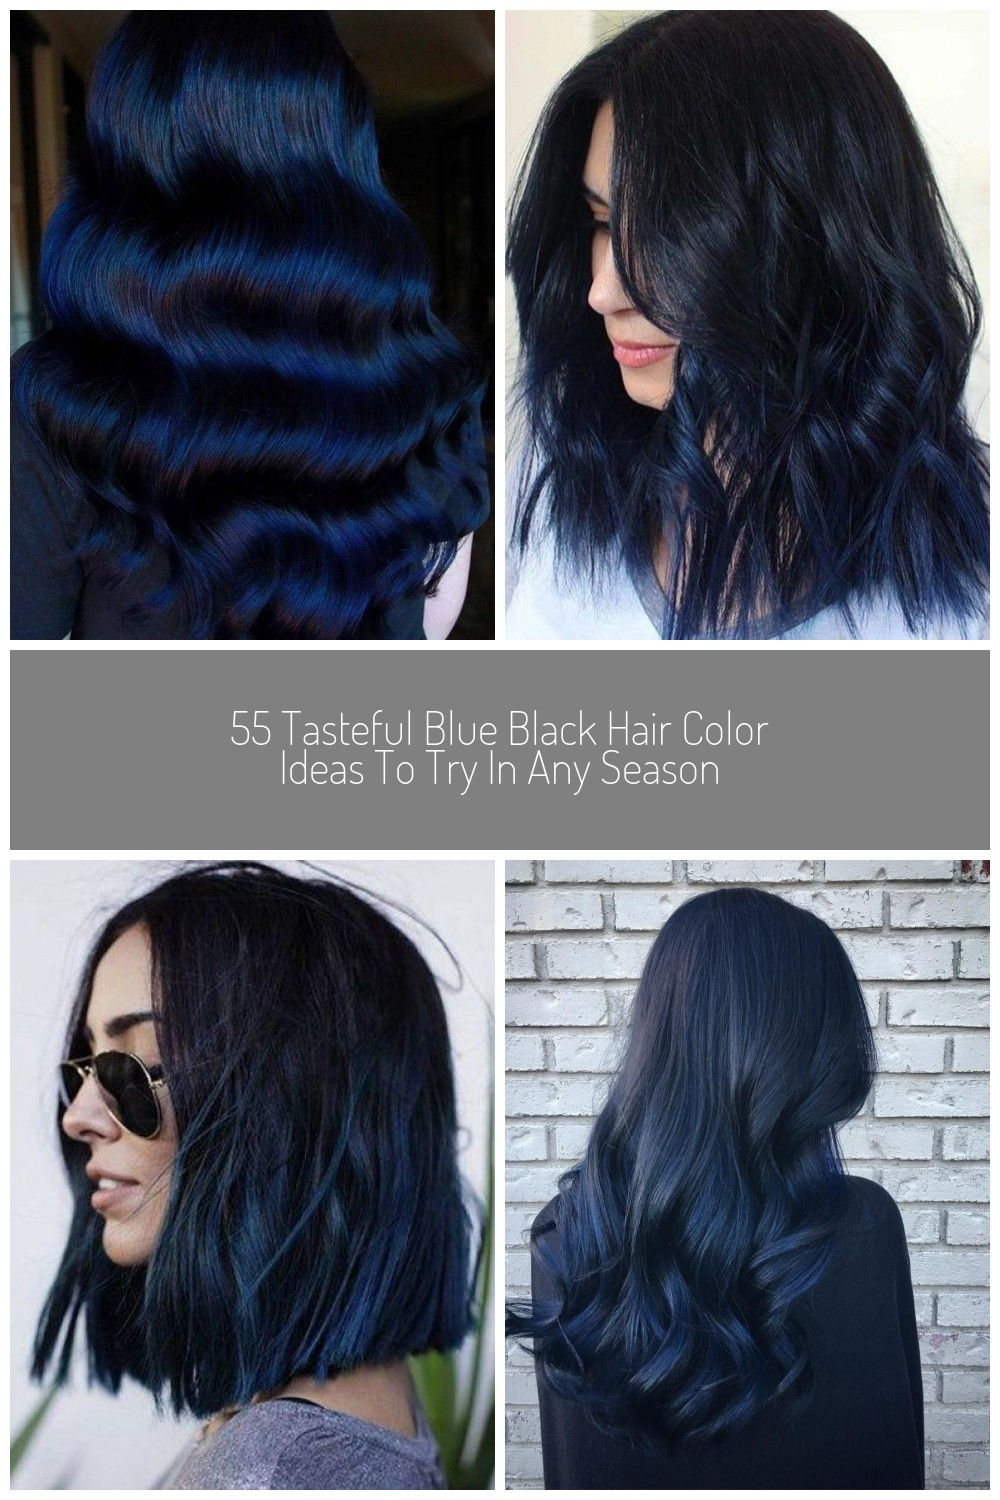 55 Tasteful Blue Black Hair Color Ideas To Try In Any Season In